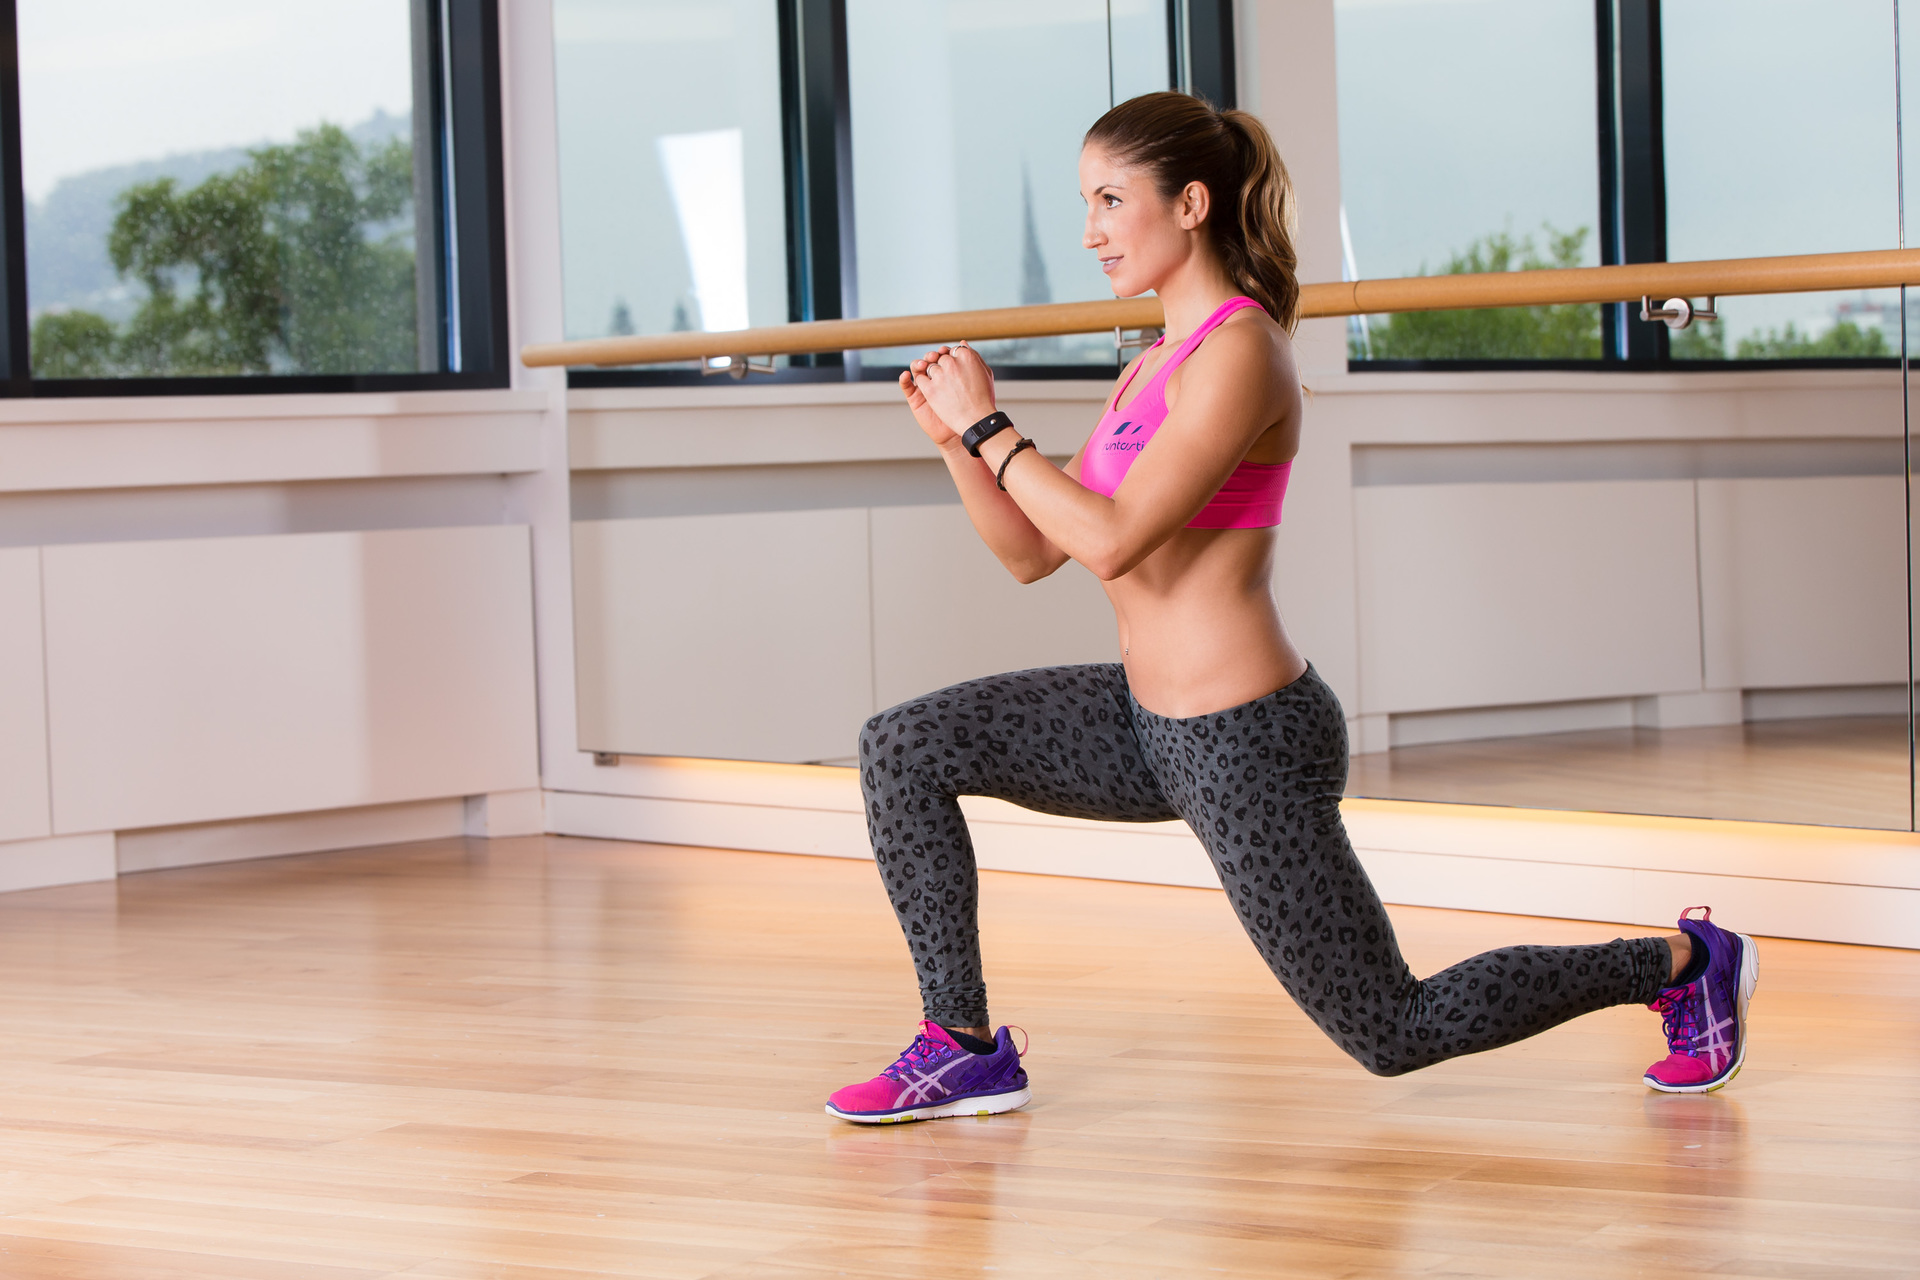 10 new lunge variations you have to try